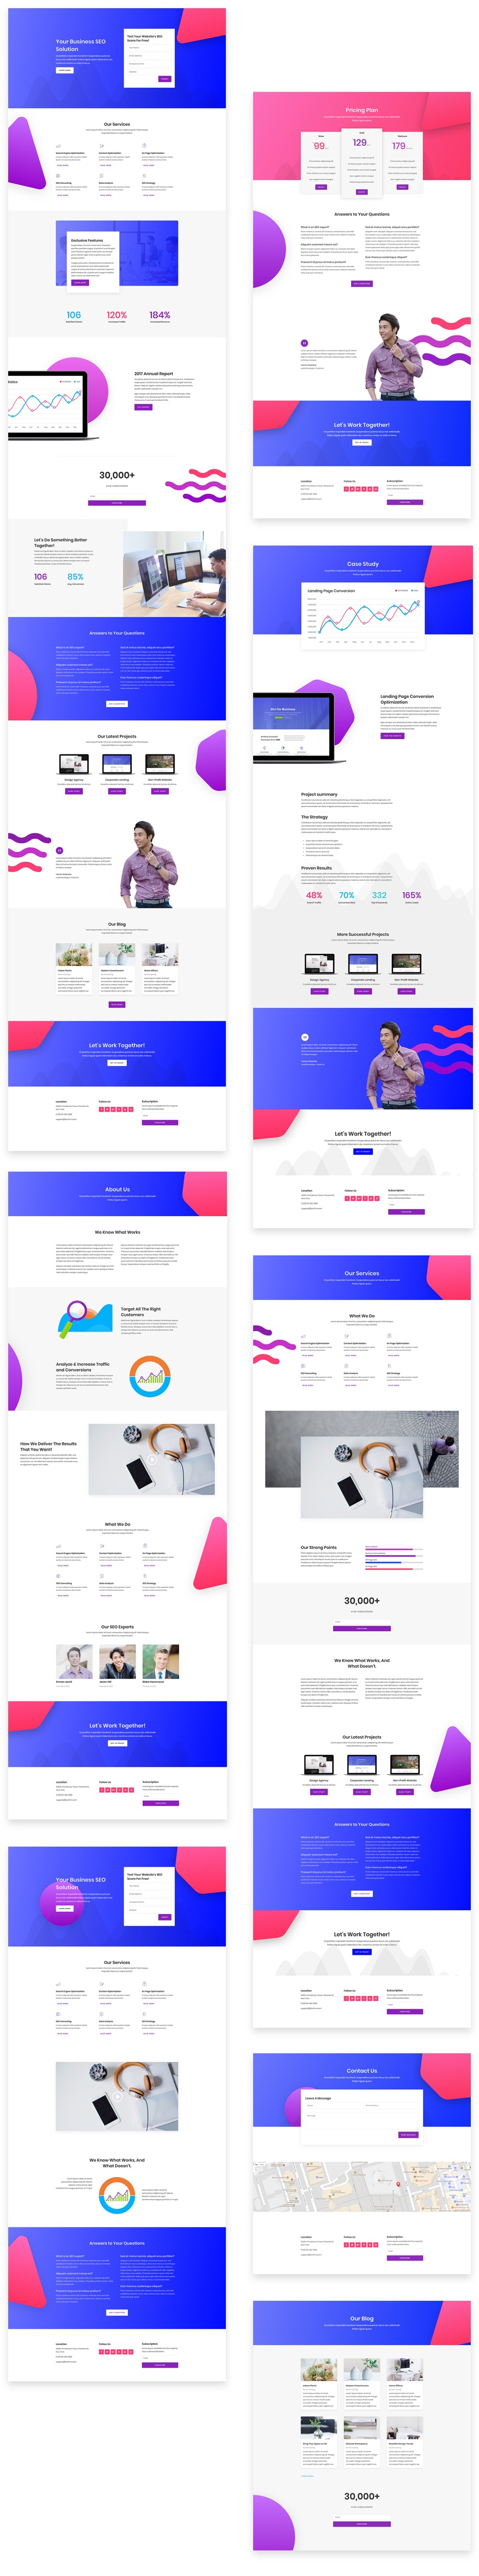 divi seo layout pack 1